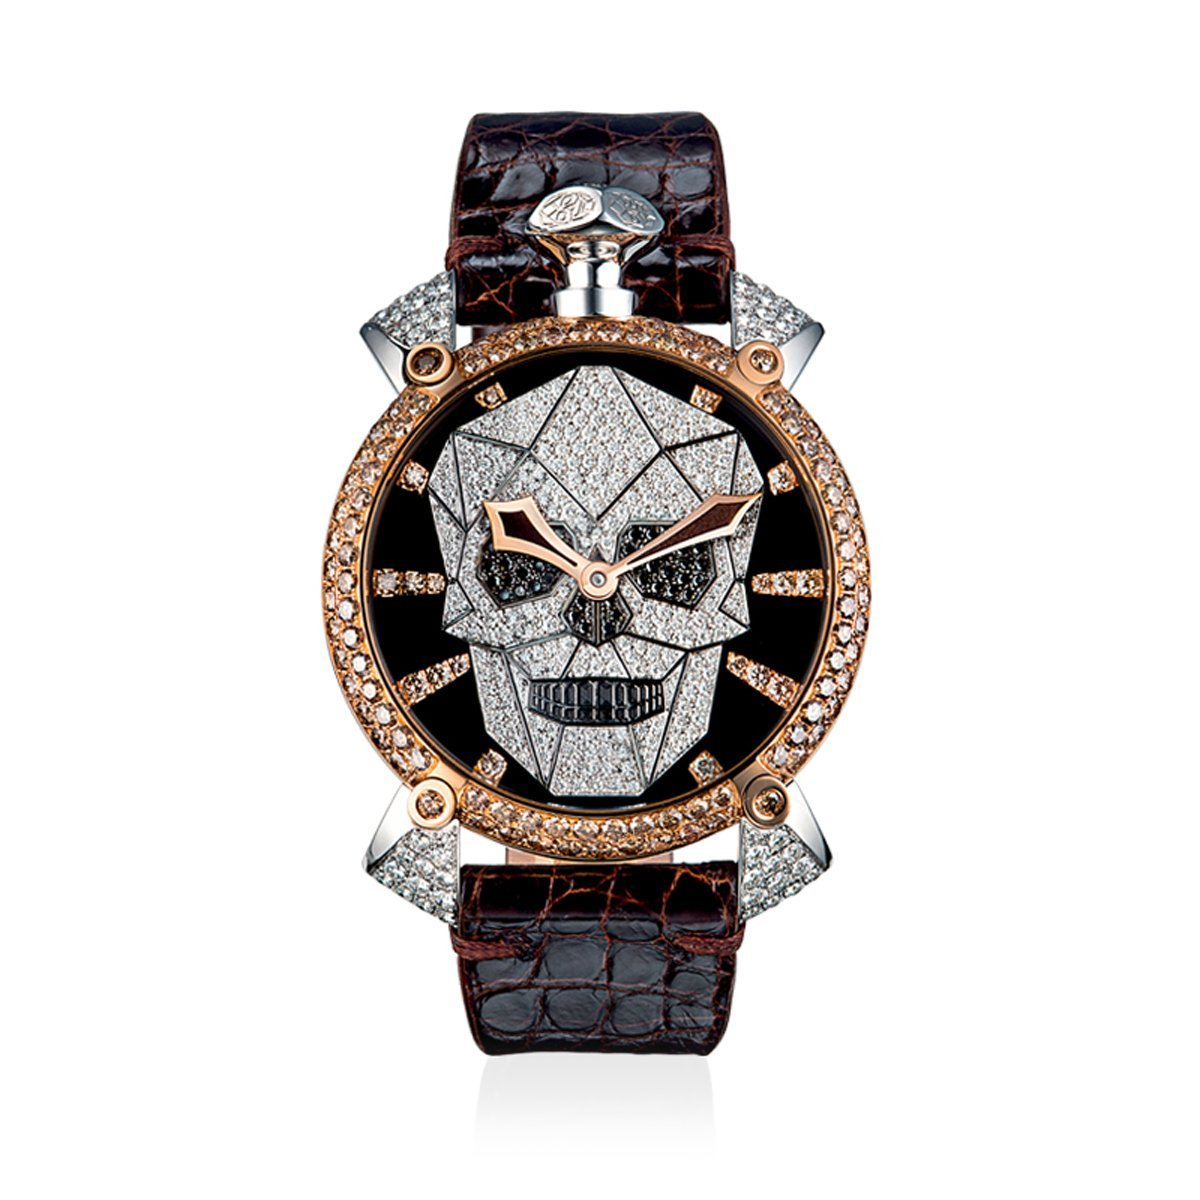 GaGà Milano Manuale 48 Bionic Skull Diamonds Gold - Watches & Crystals